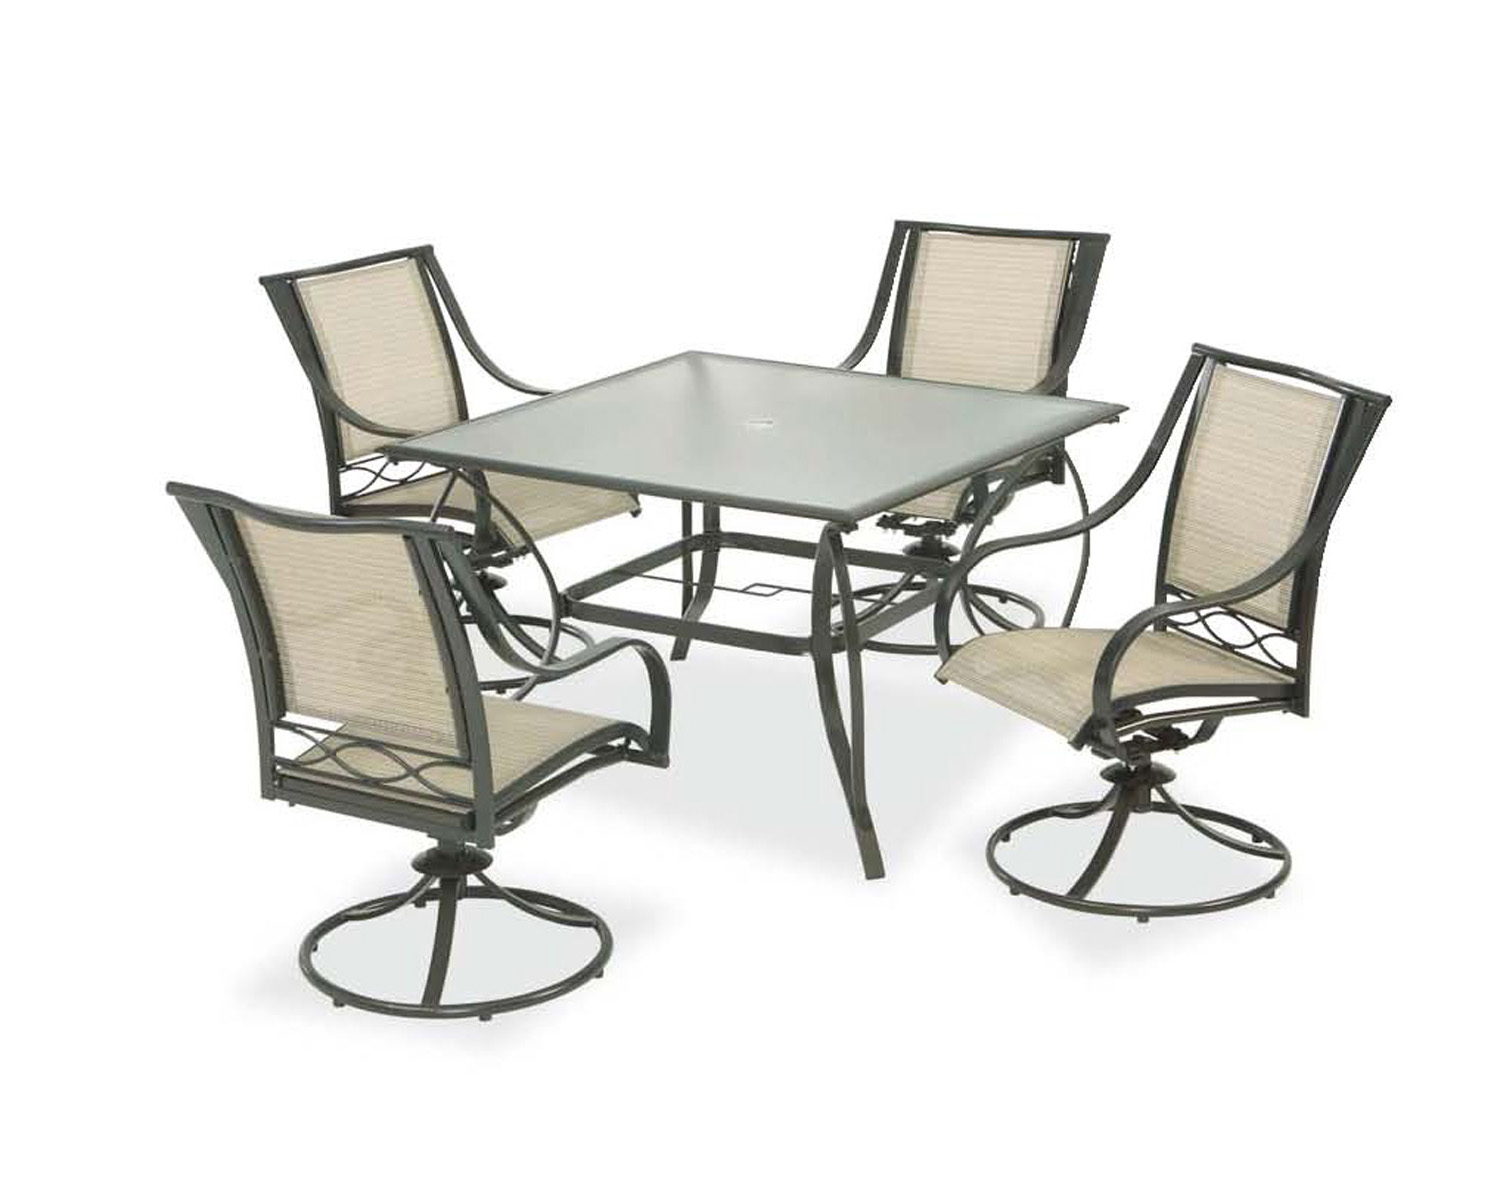 Casual Living U201cDana Pointu201d And U201cWellingtonu201d Patio Sets